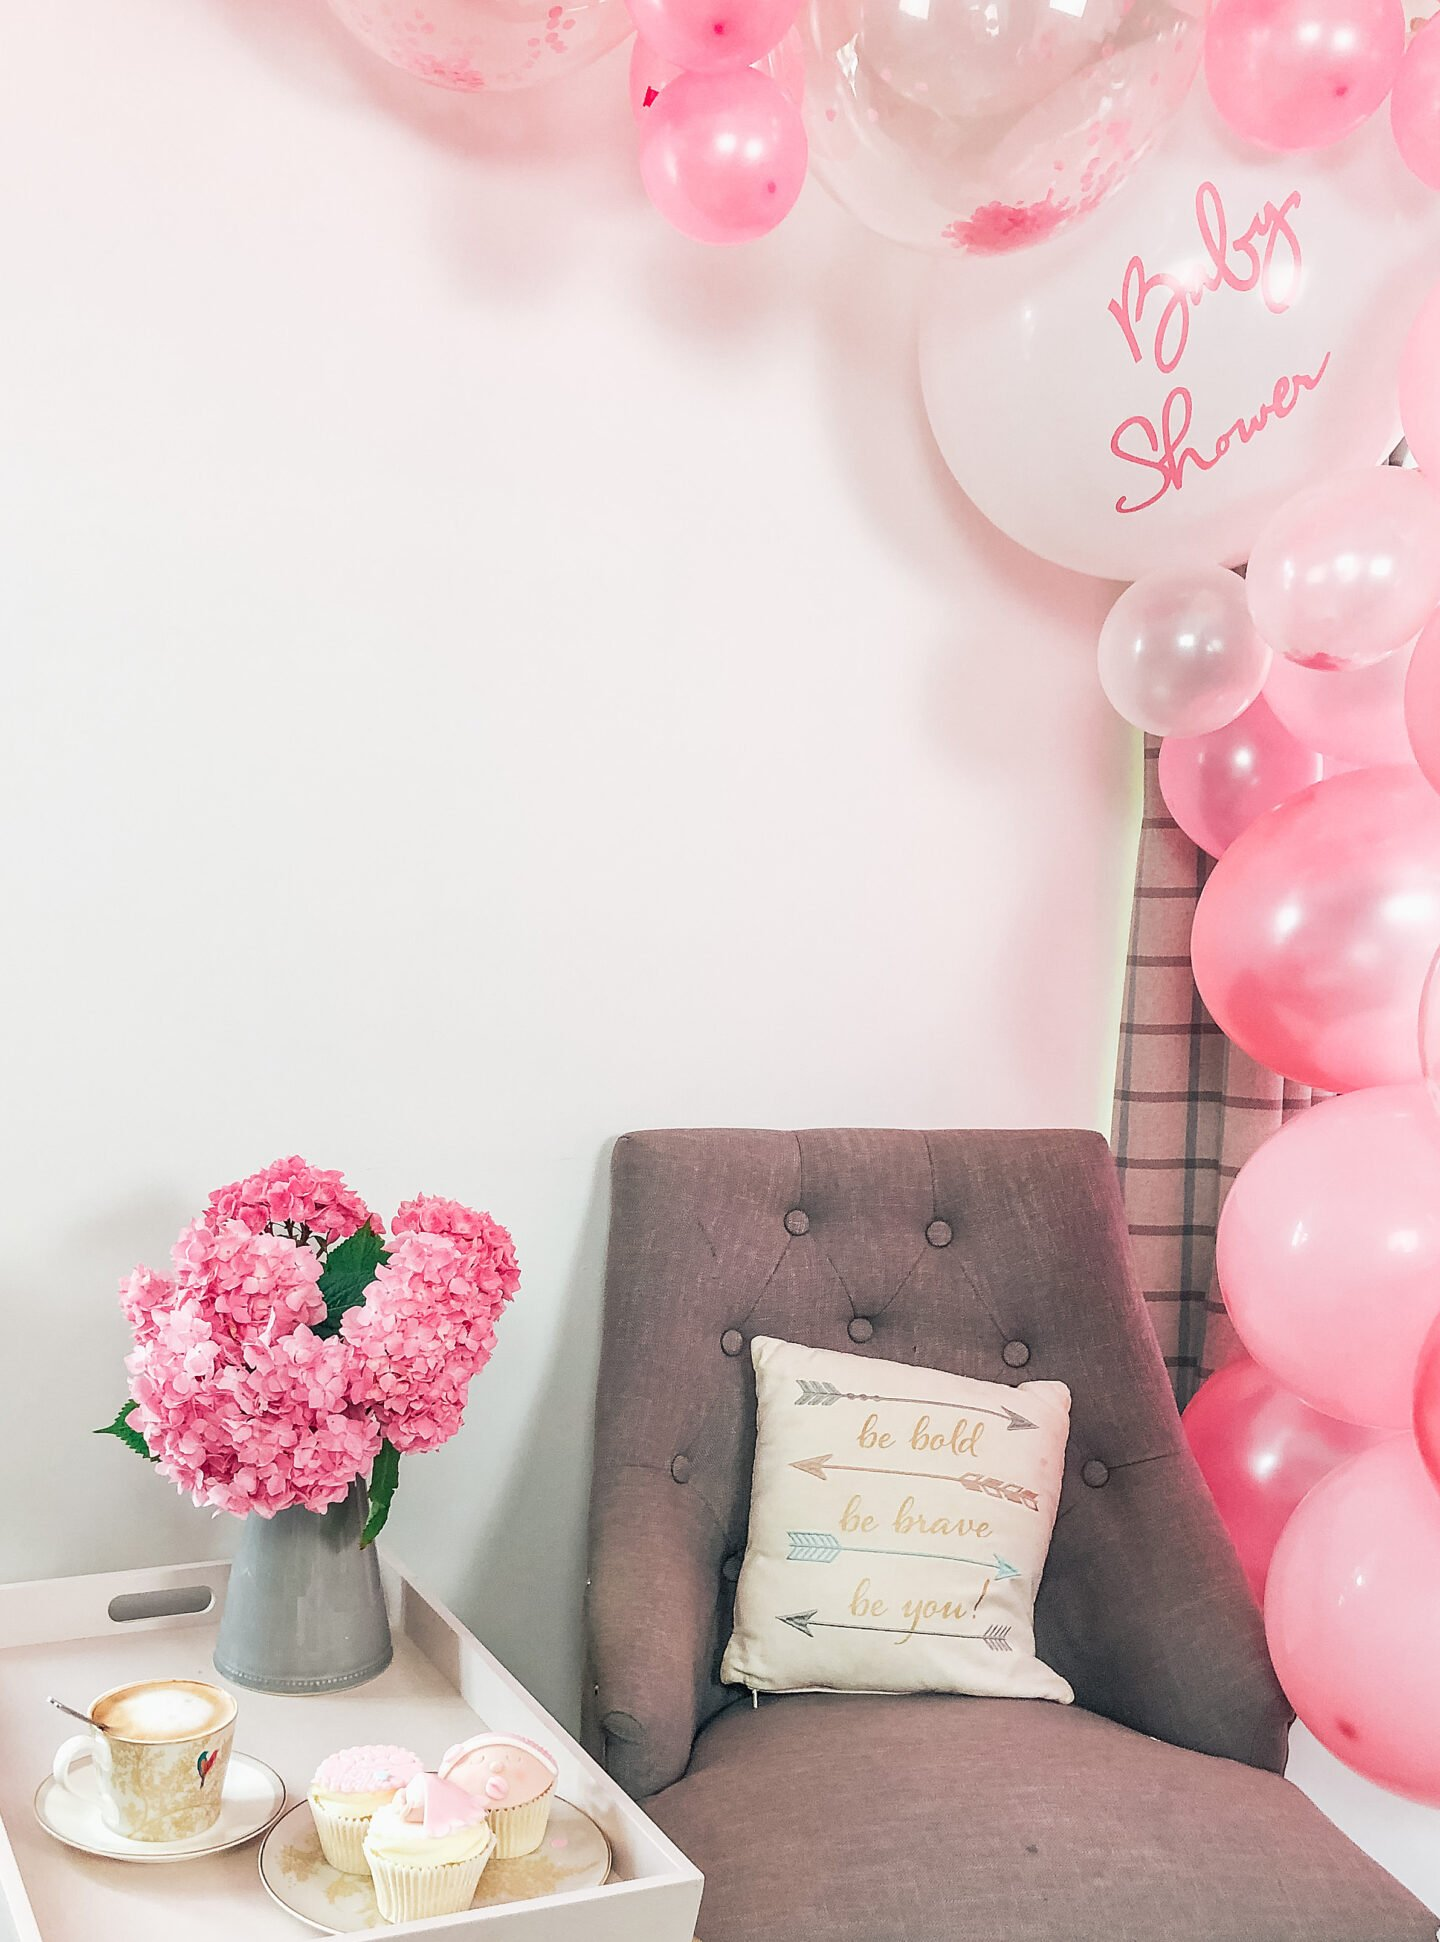 Baby shower afternoon how to make a balloon arch with Cricut vinyl balloon decals and  tape